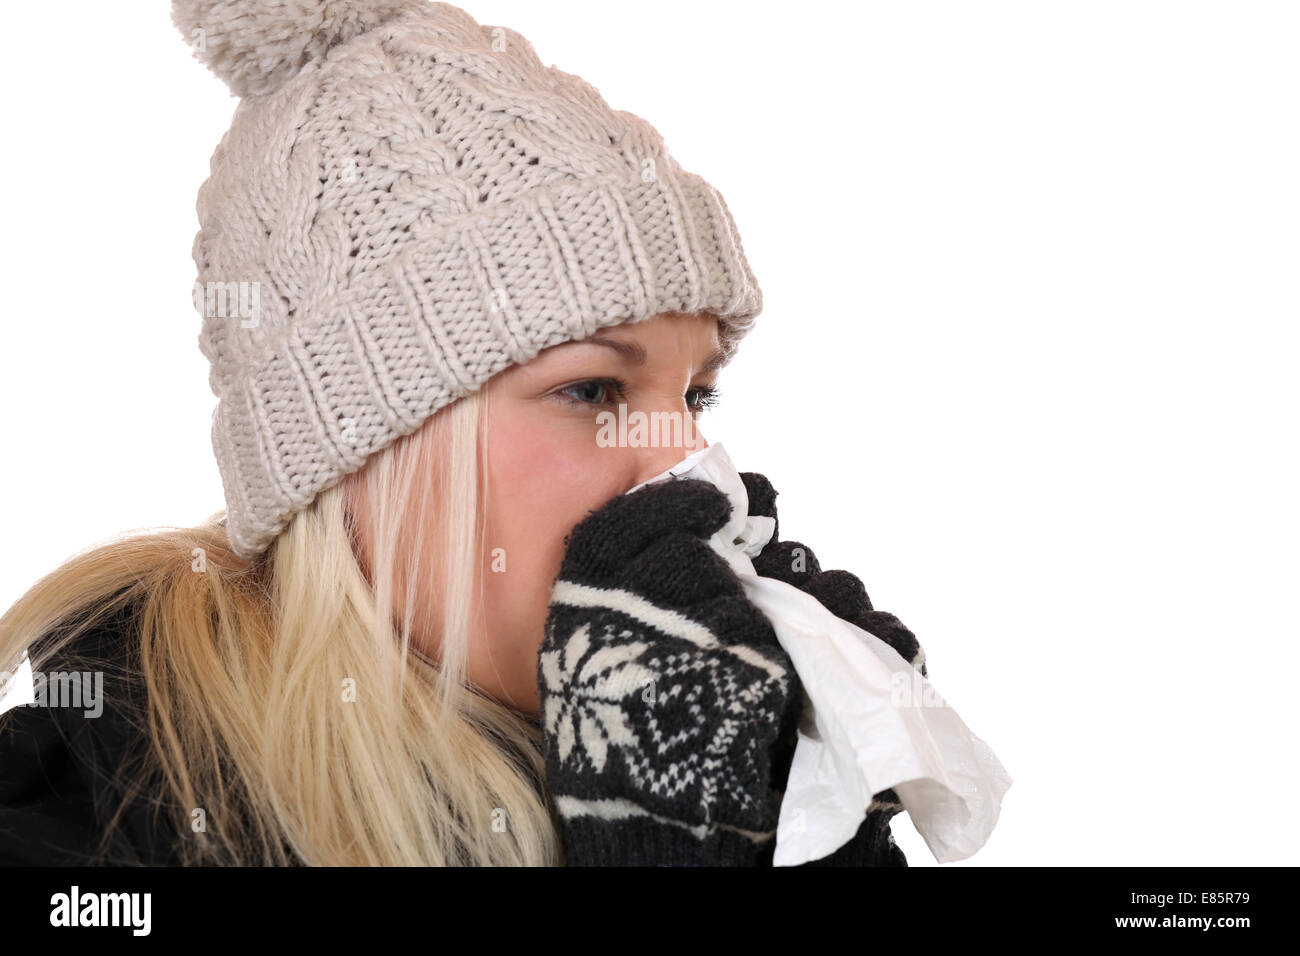 Young woman with a cold and flu virus sneezing into a tissue is ill, isolated on a white background - Stock Image